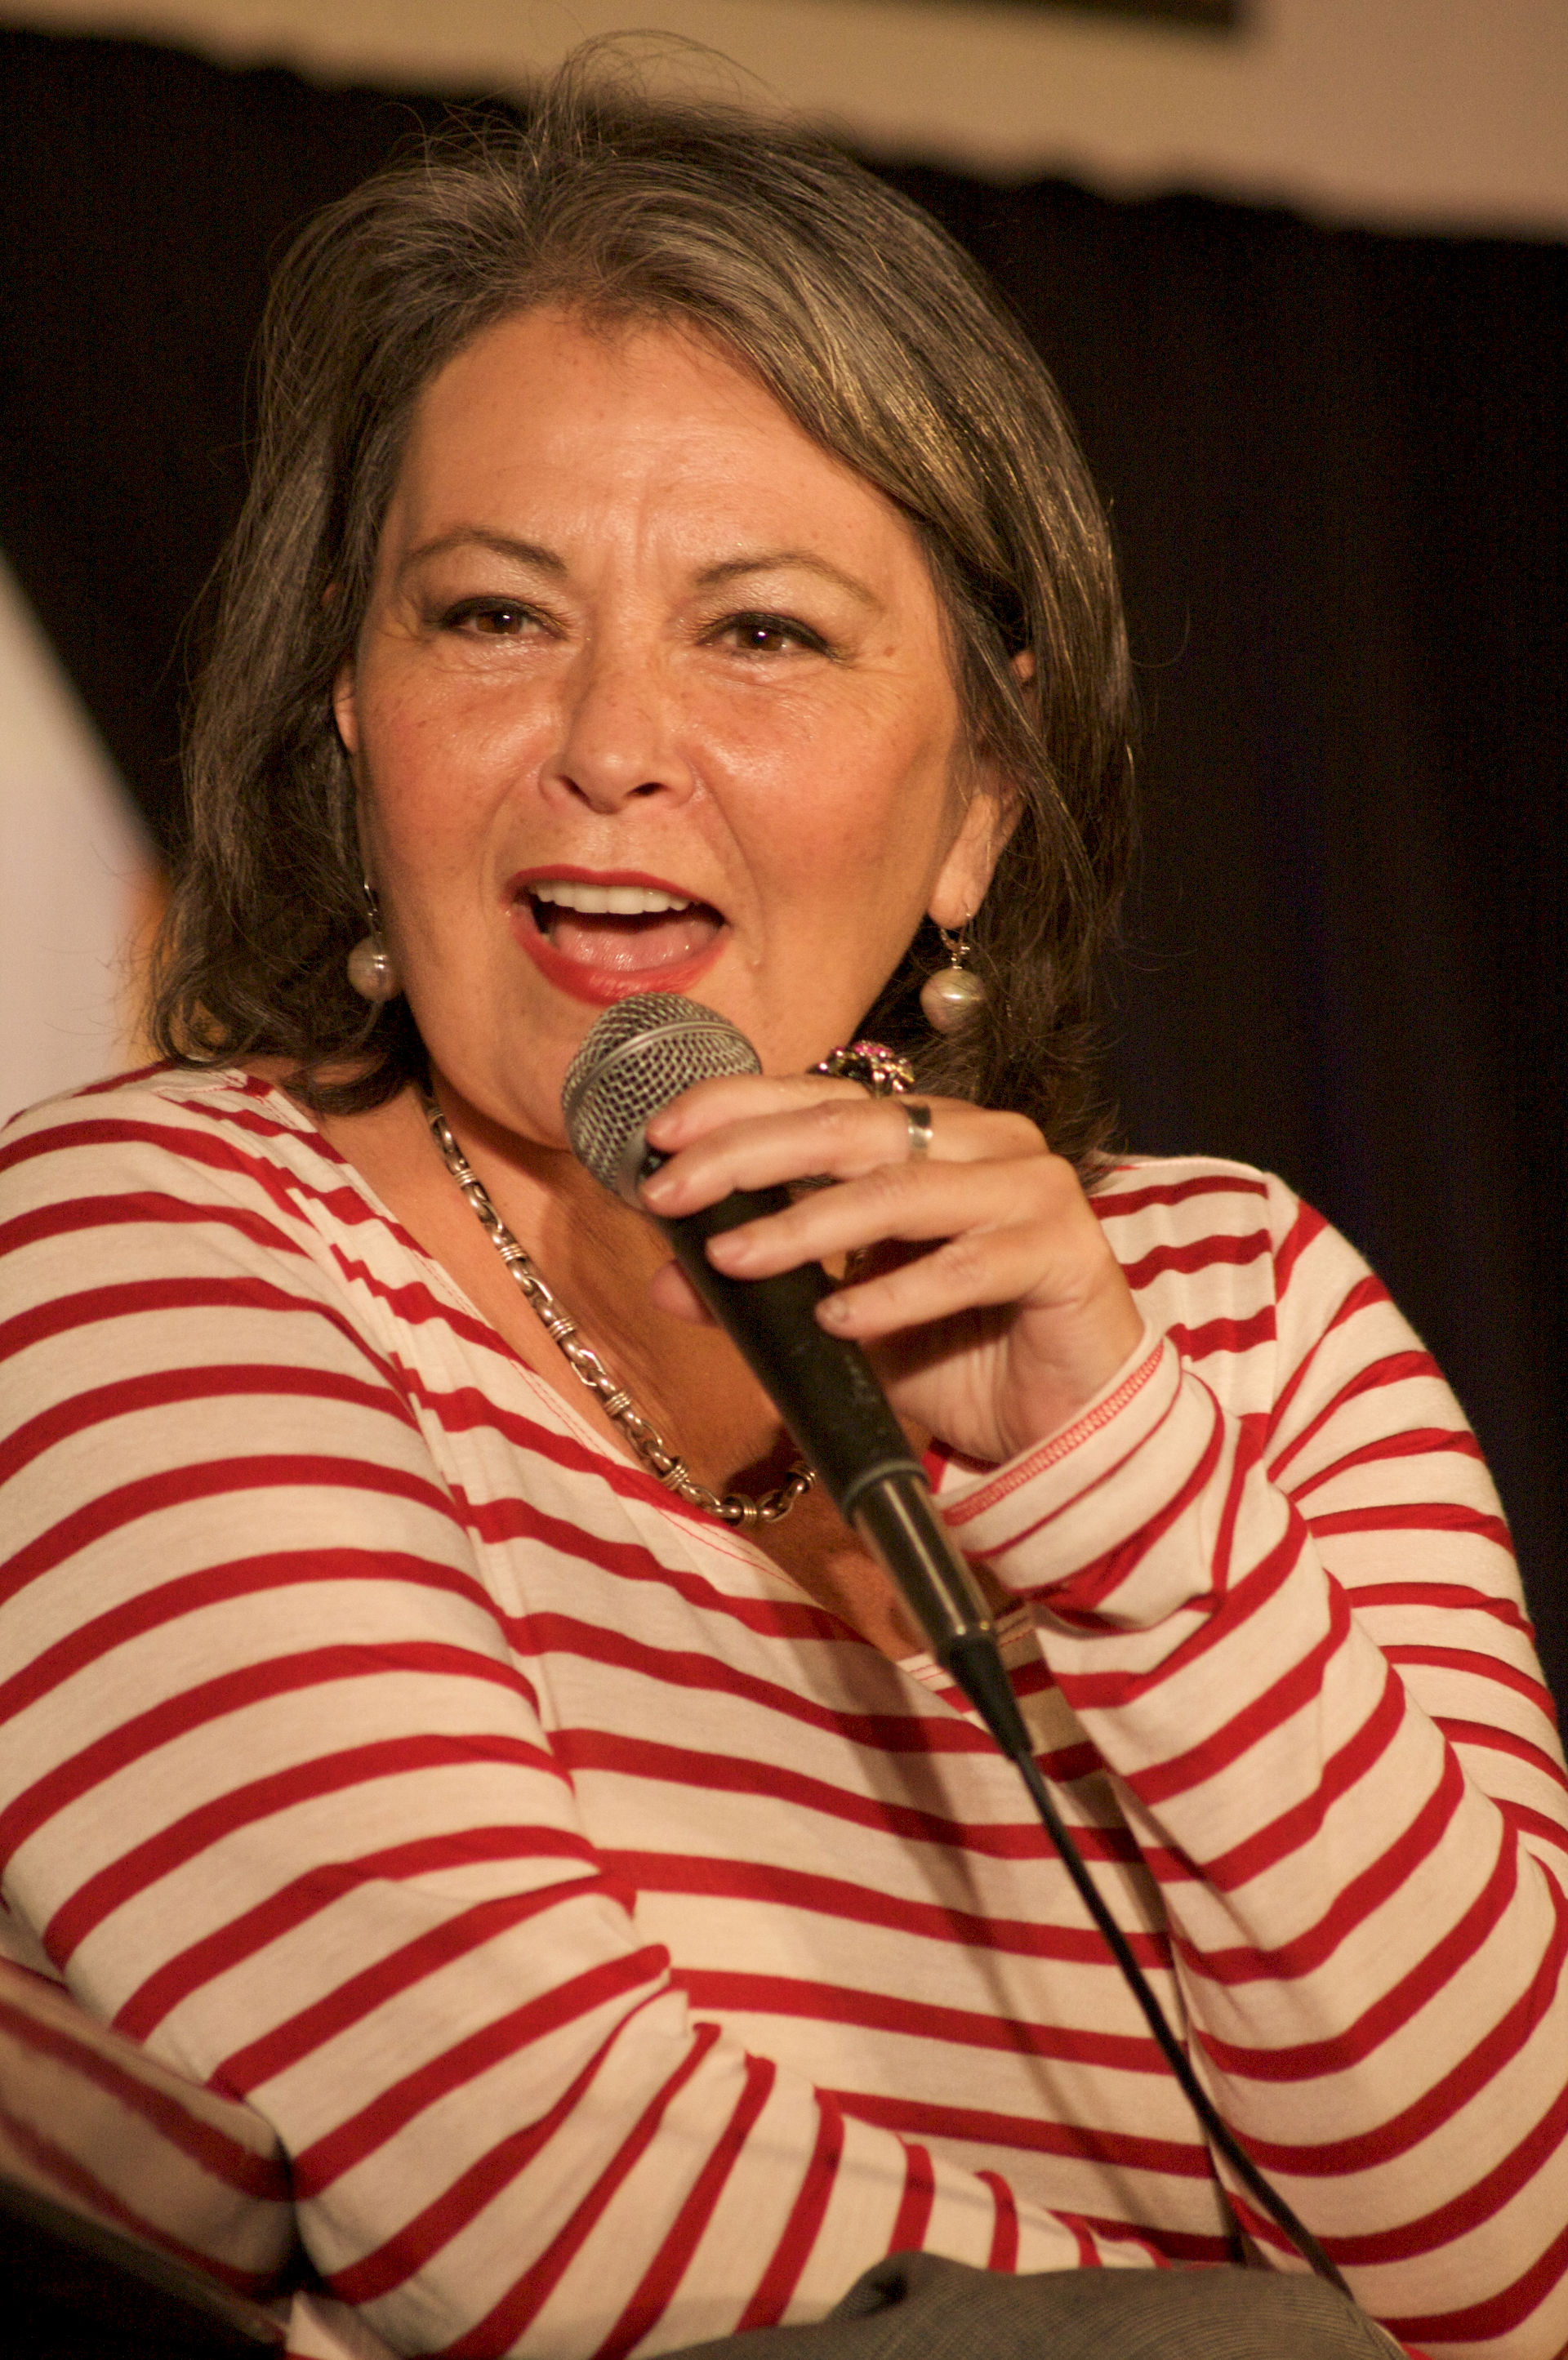 Photo of Roseanne Barr: Actress, comedienne, writer, producer, director